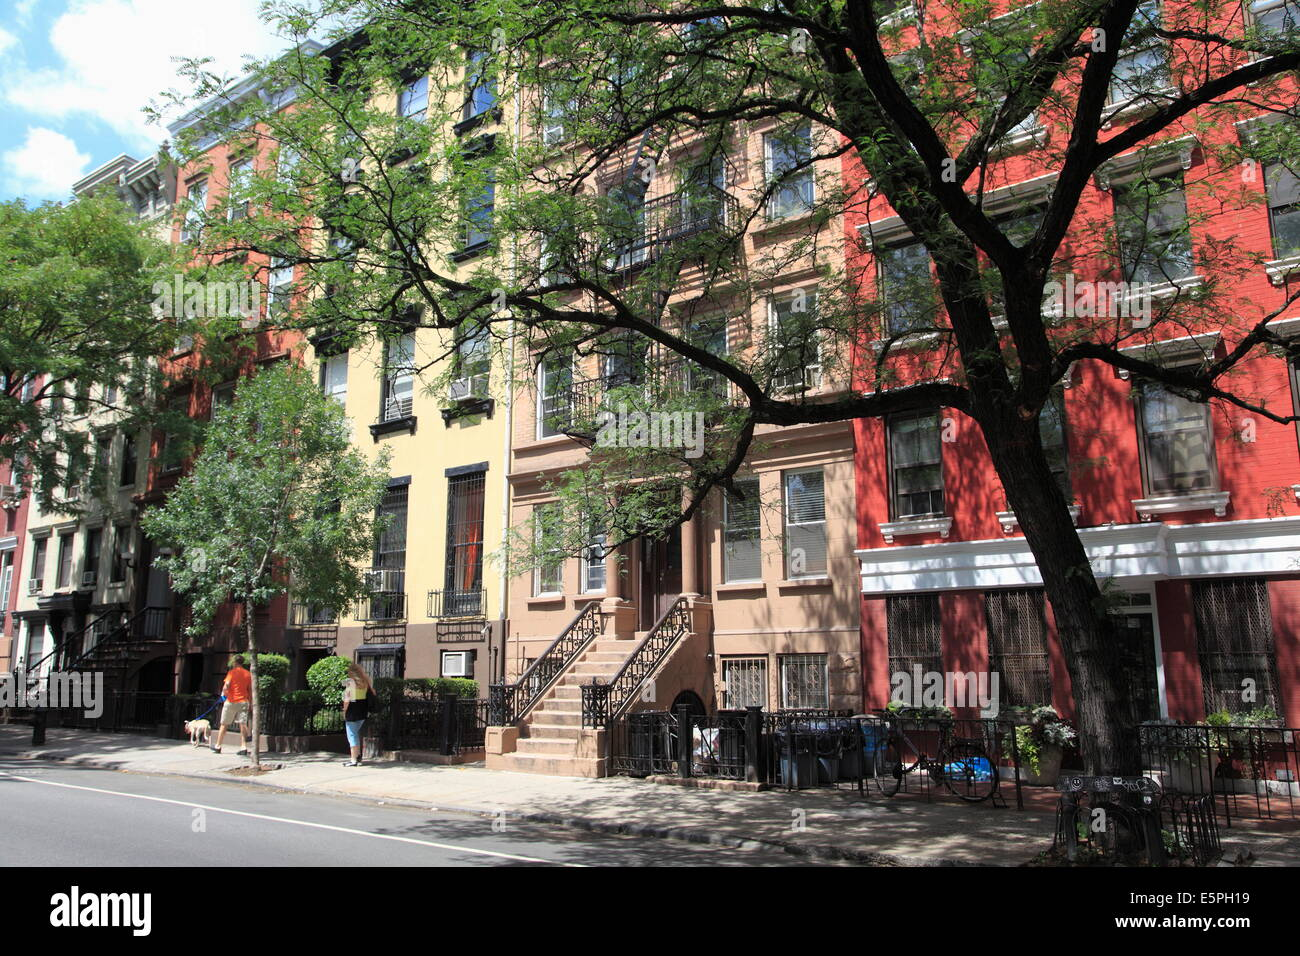 Apartment Buildings, East Village, Alphabet City, Manhattan, New York City,  United States Of America, North America